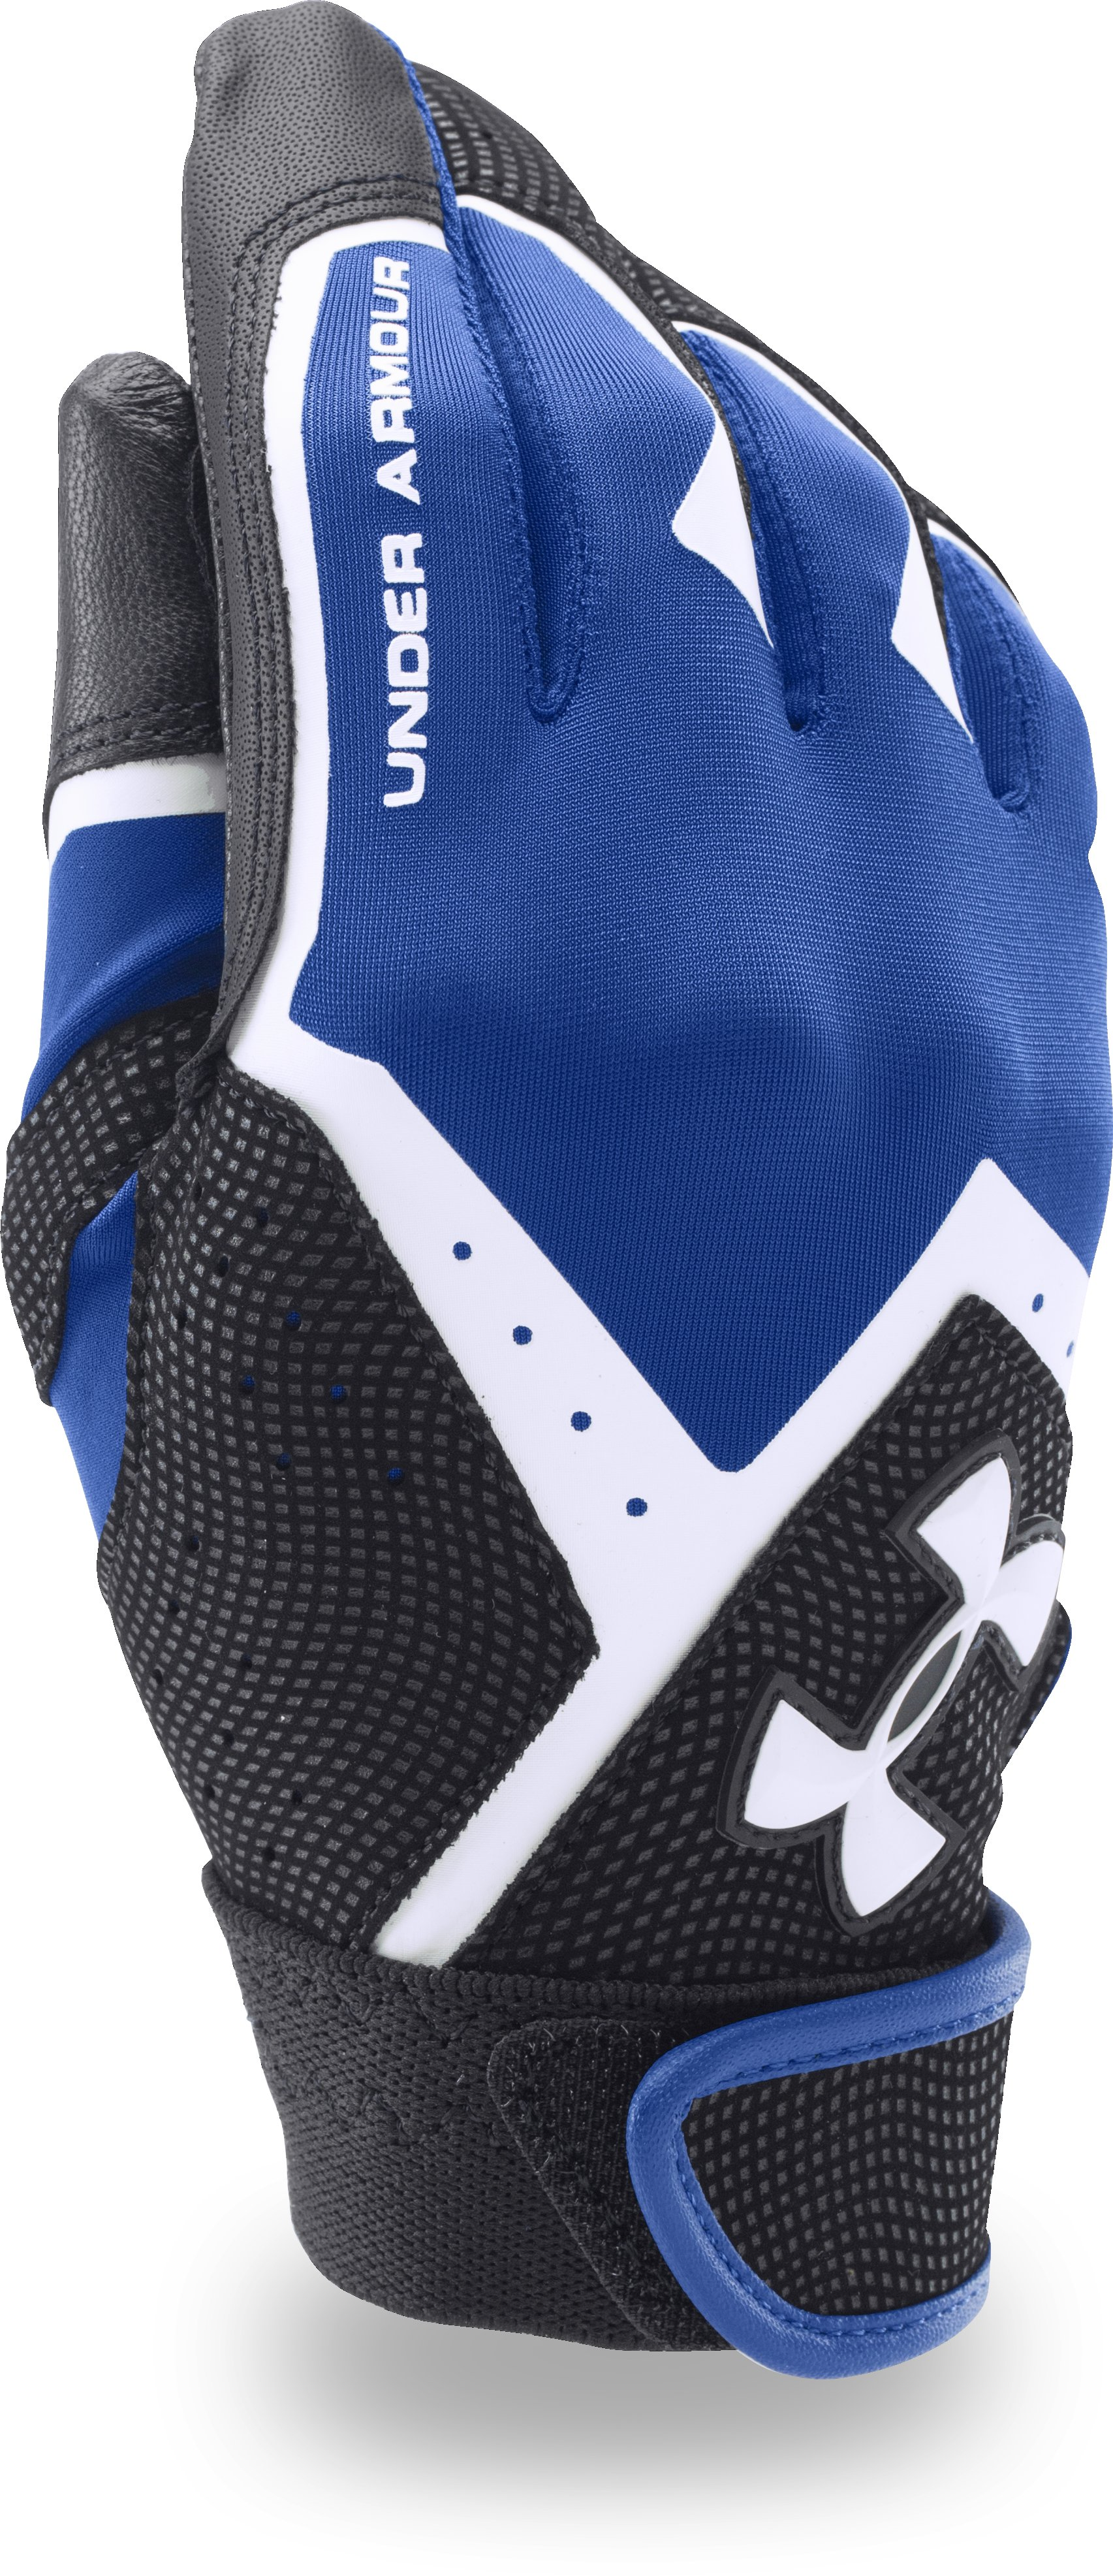 royal gloves Boys' UA Clean-Up VI Batting Gloves Great gloves !...Good pruduct...He loves them!!